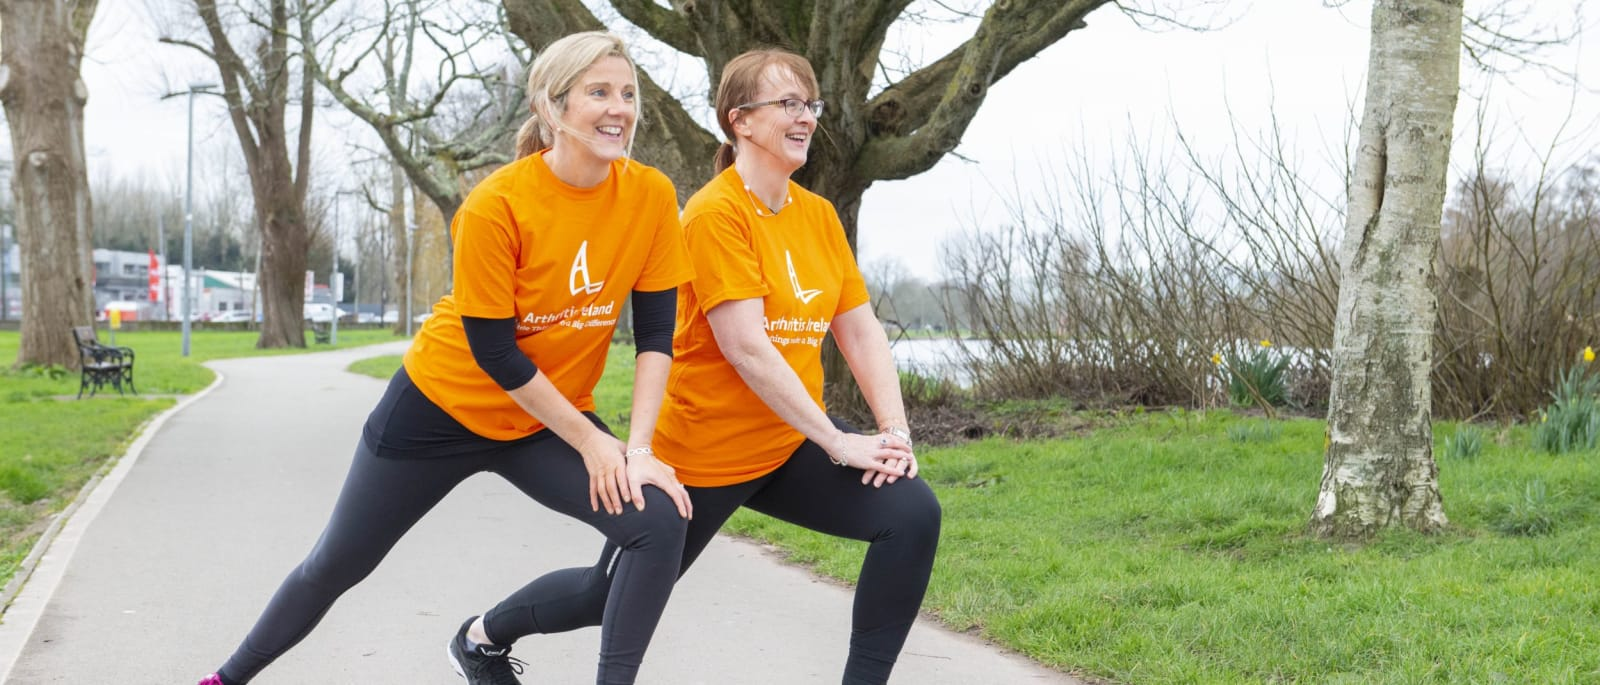 Vhi Mini Marathon